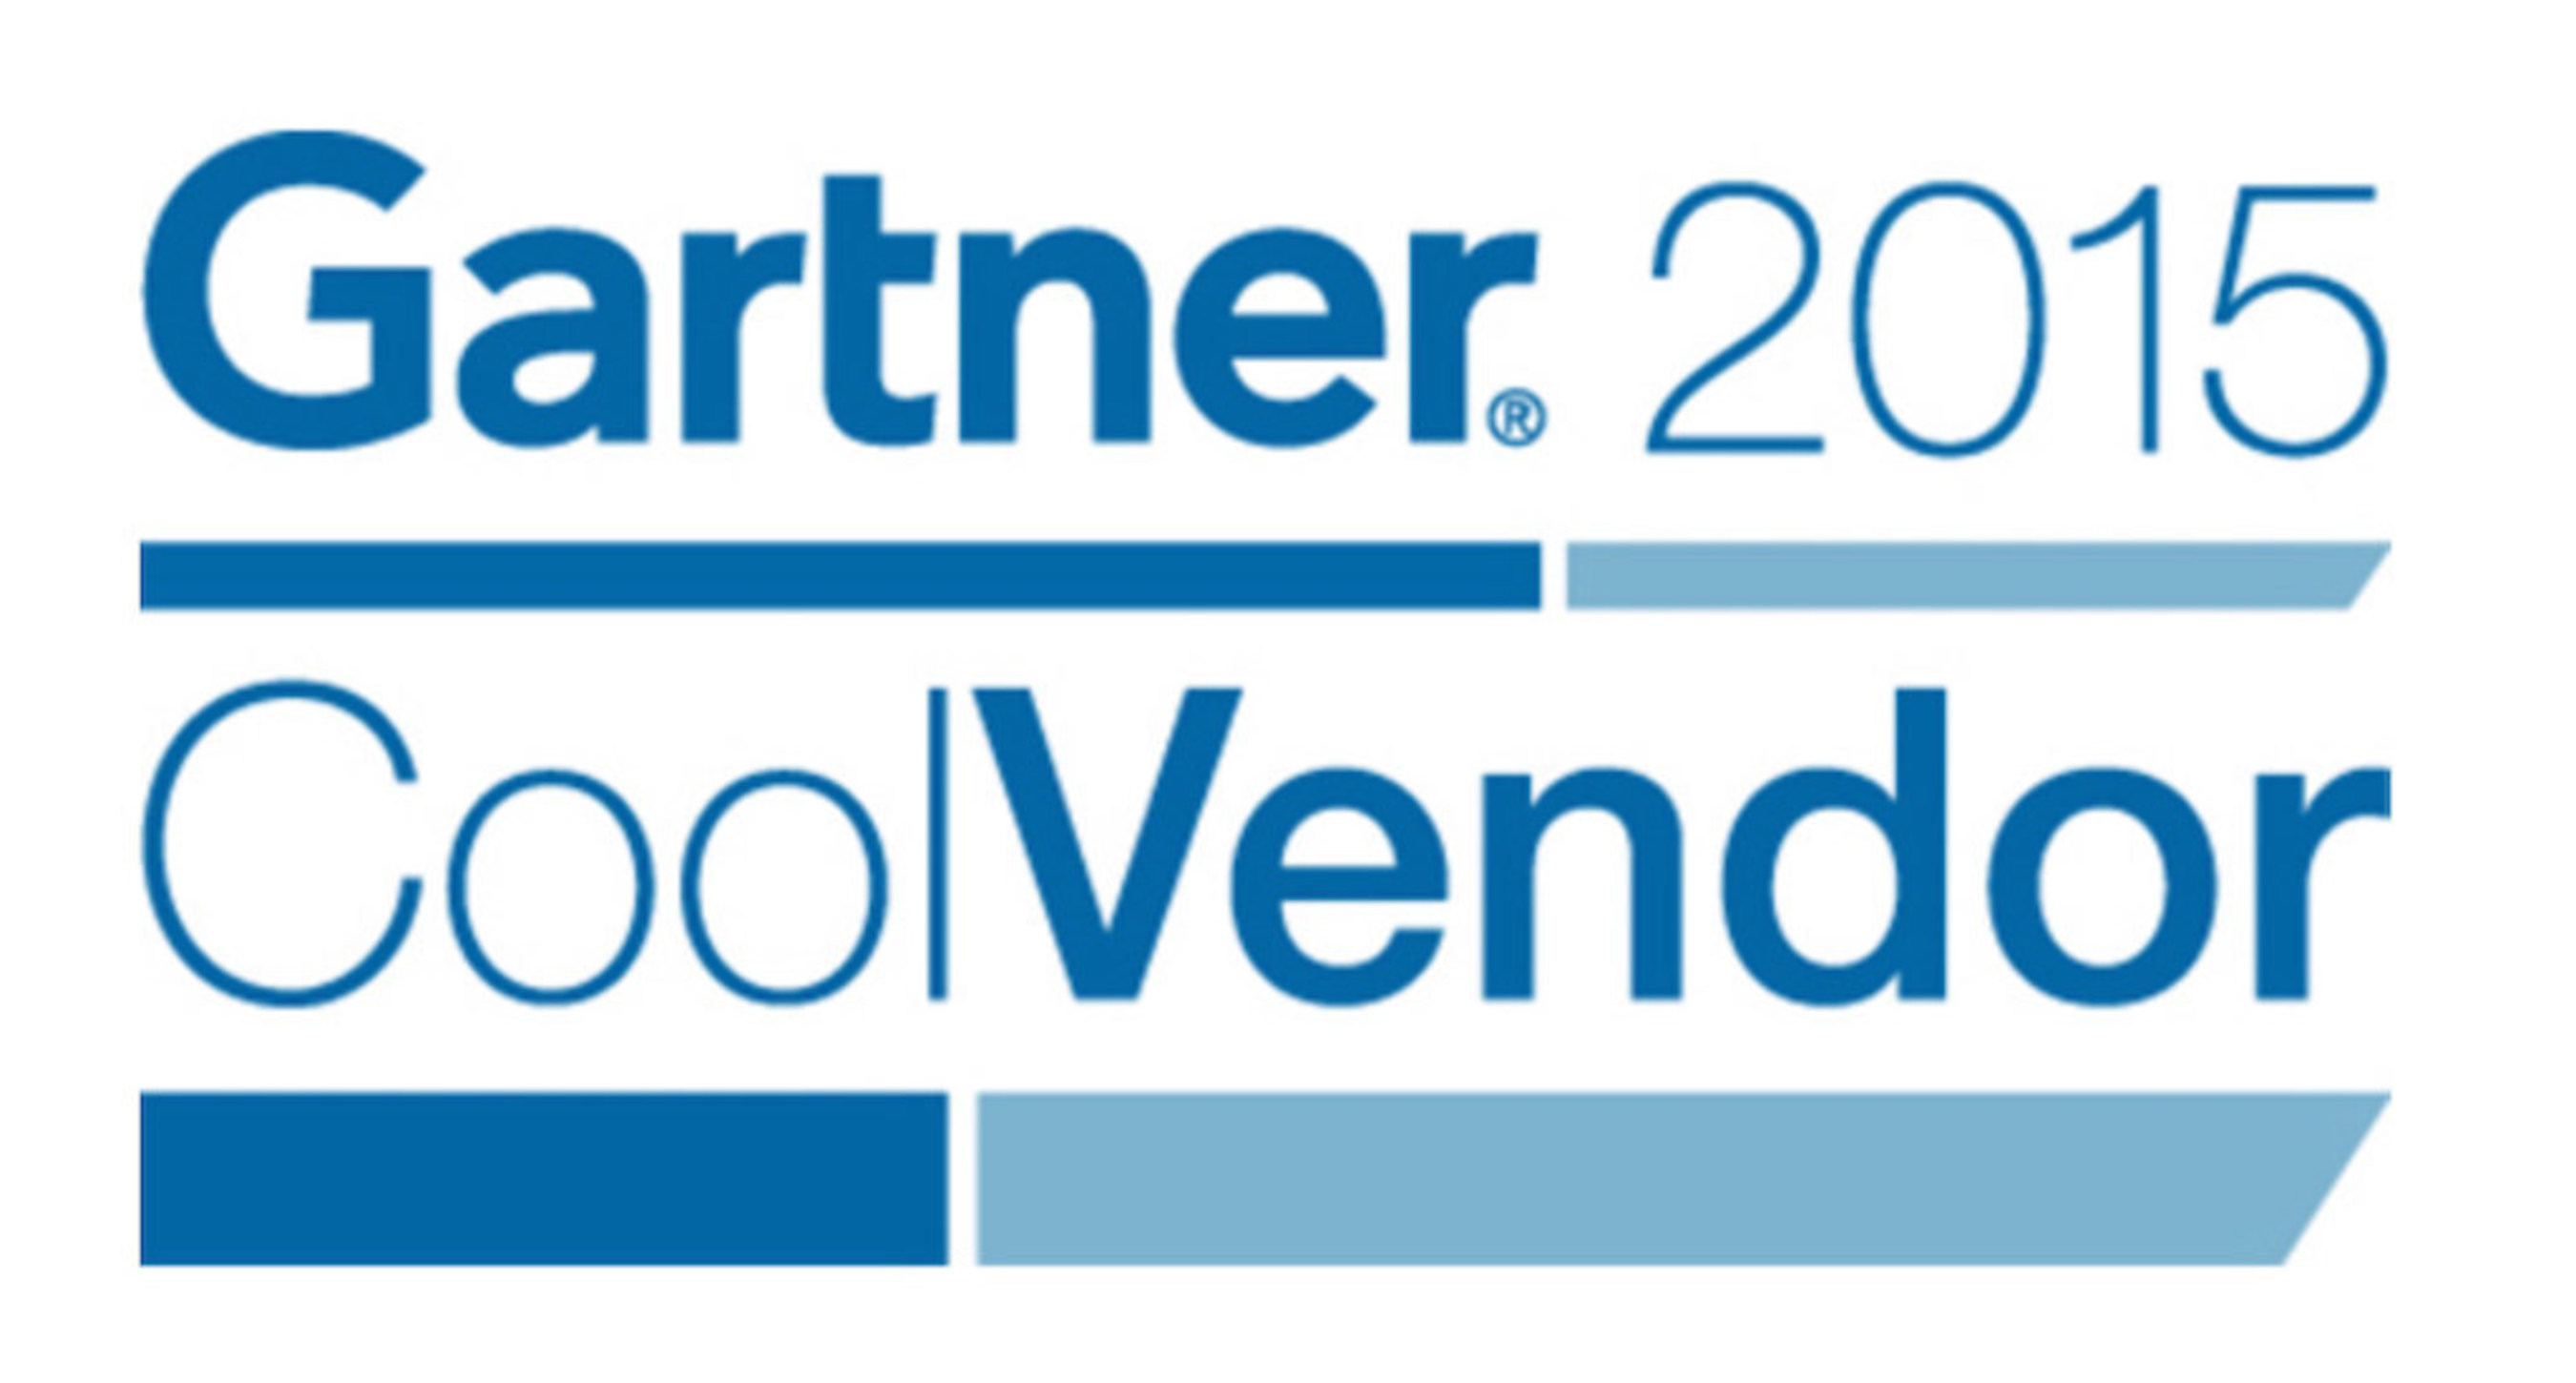 Gartner, World's Leading Information Technology Research Company, Names LeoNovus as 'Cool Vendor in Green IT' for 2015